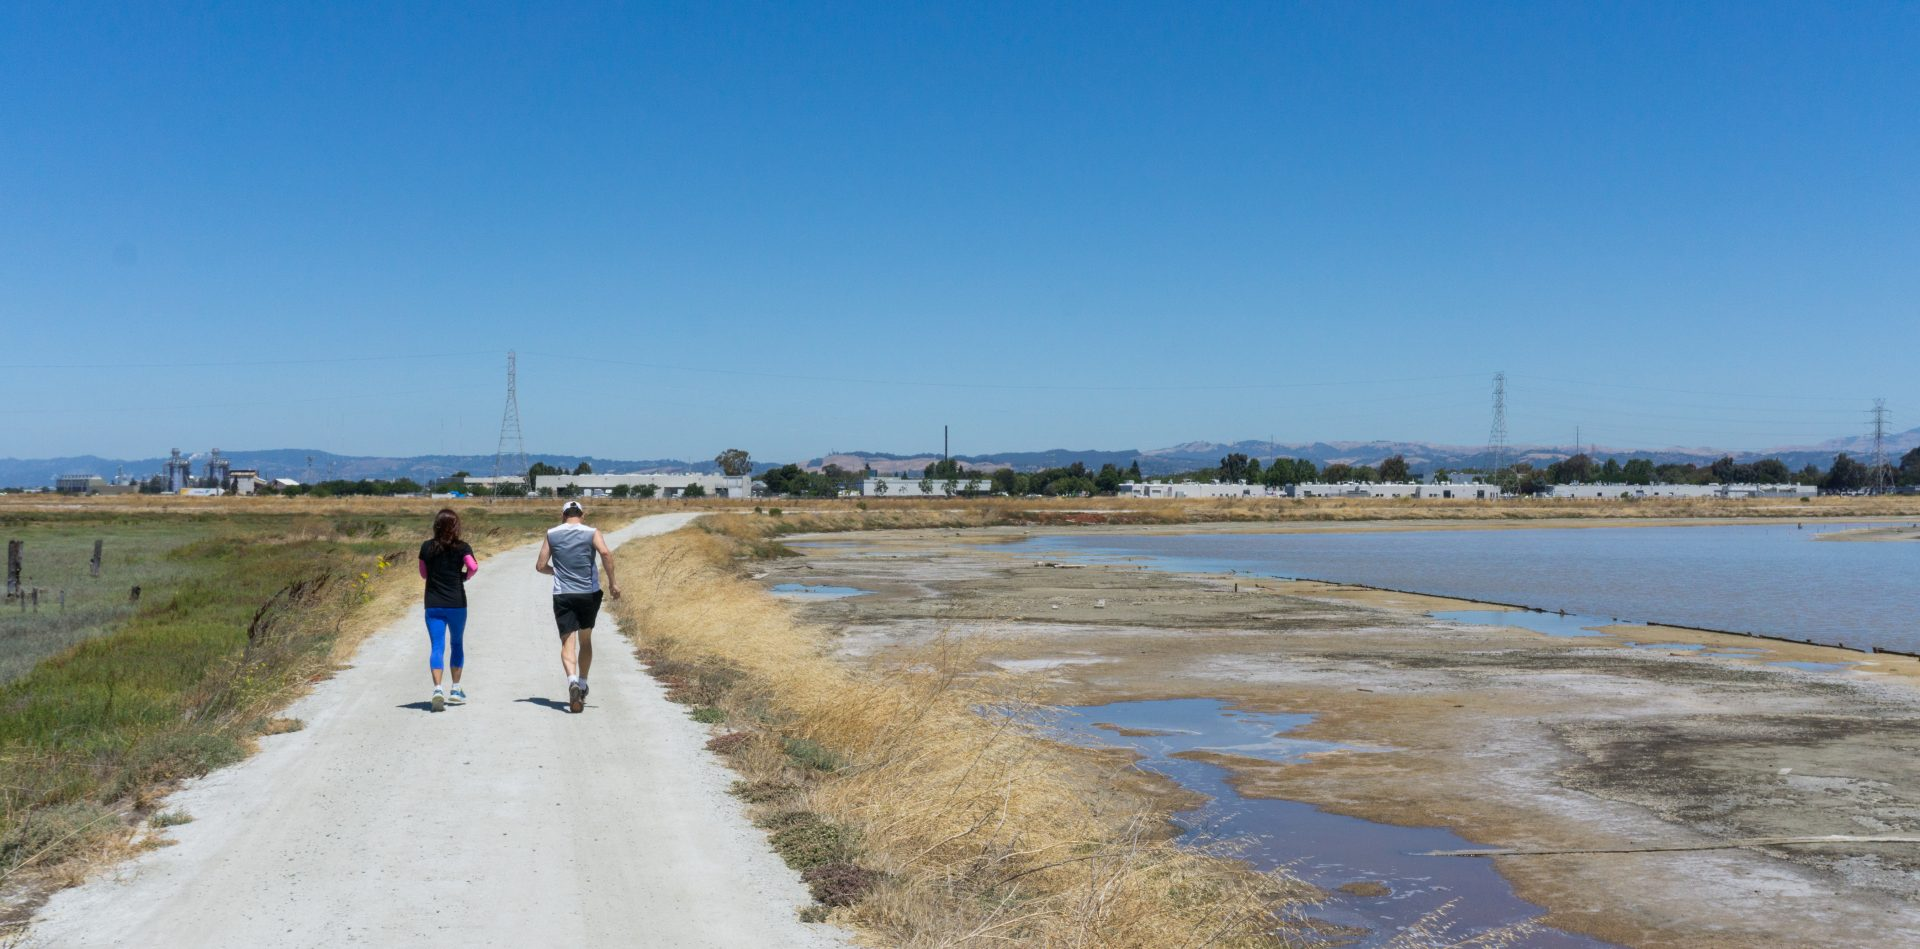 Two joggers on a gravel path, with marshlands on right